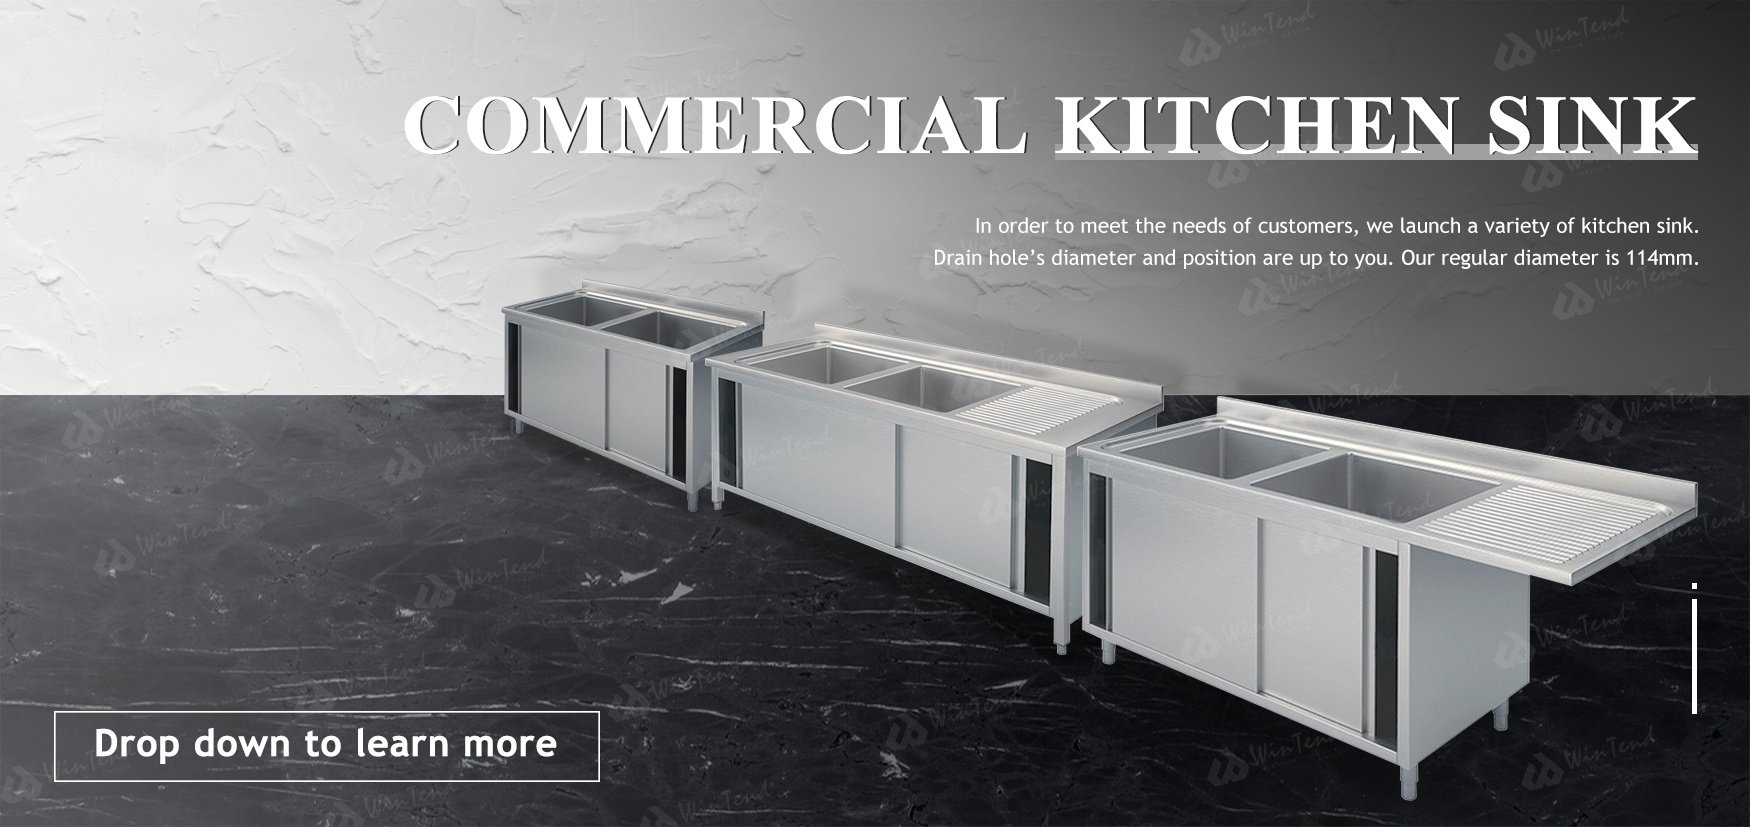 Stainless Steel Commercial Large Rectangular Kitchen Utility Sink China Apron Sink Kitchen Sink Made In China Com